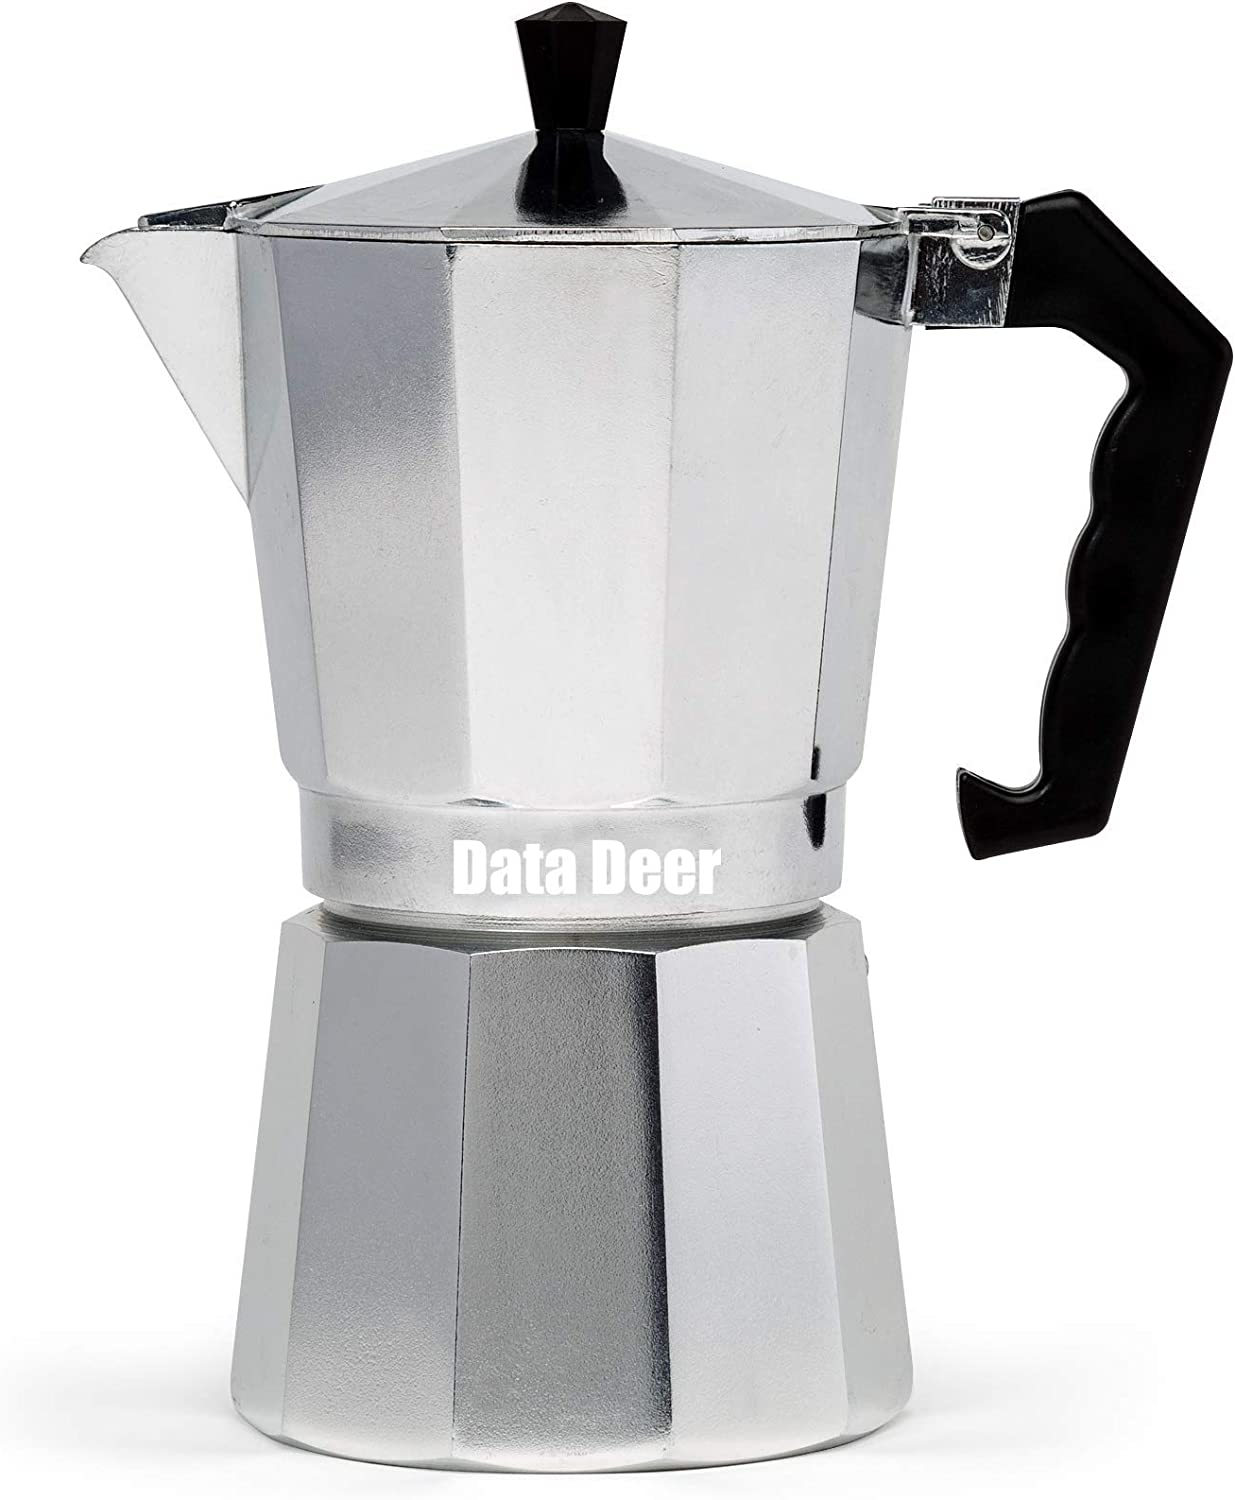 Data Deer Stovetop Espresso Maker with B Great Rich and Flavored New product! New type Excellence